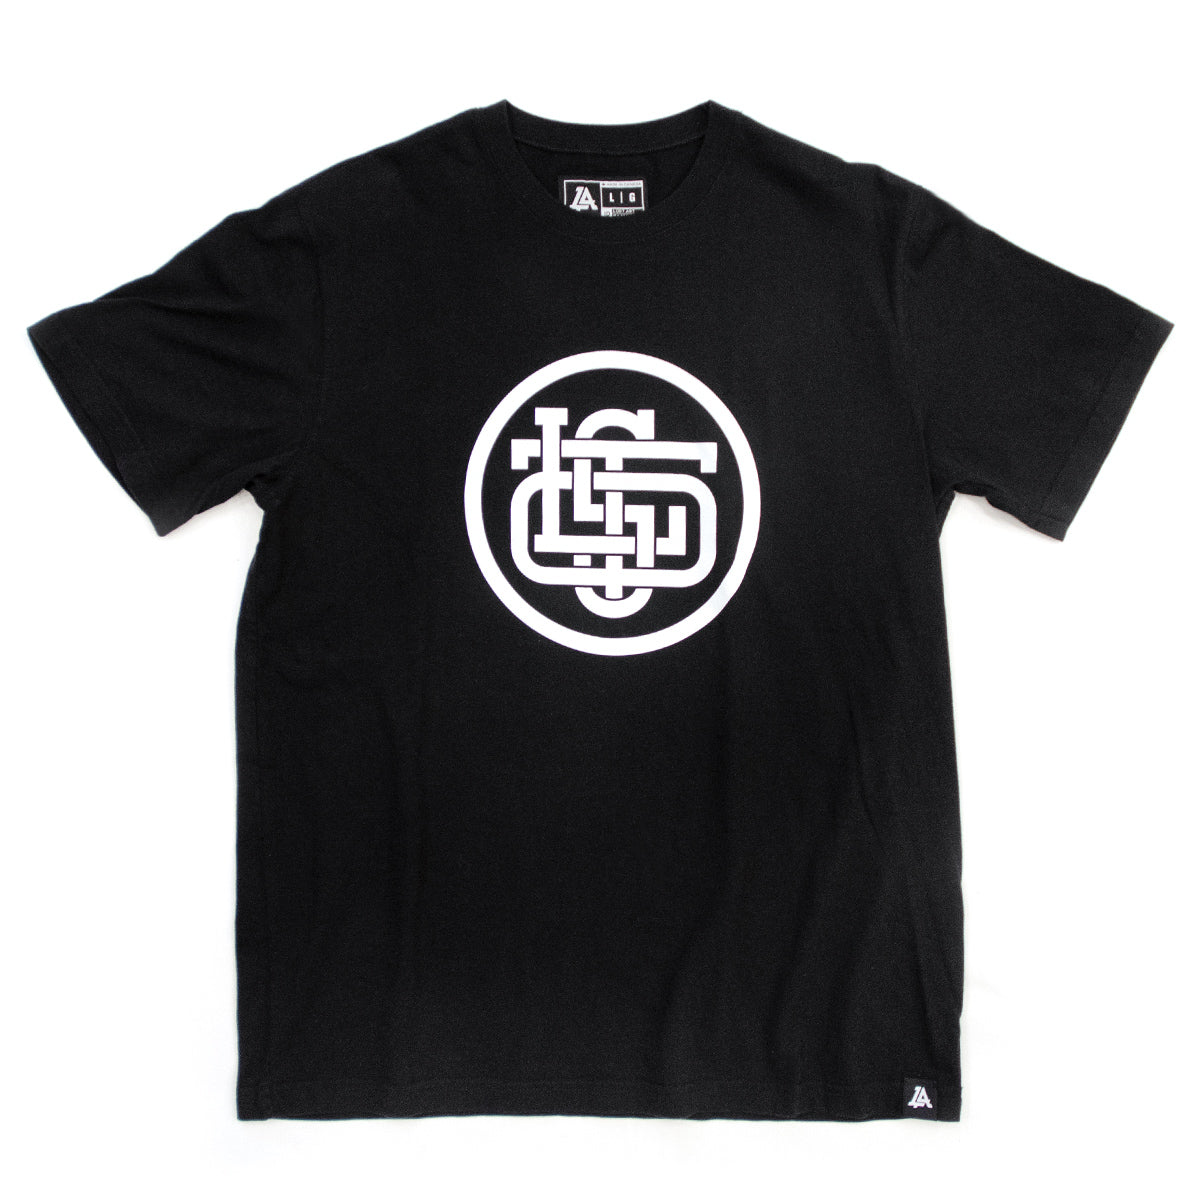 Lost Art Canada - white on black monogram logo tee front view